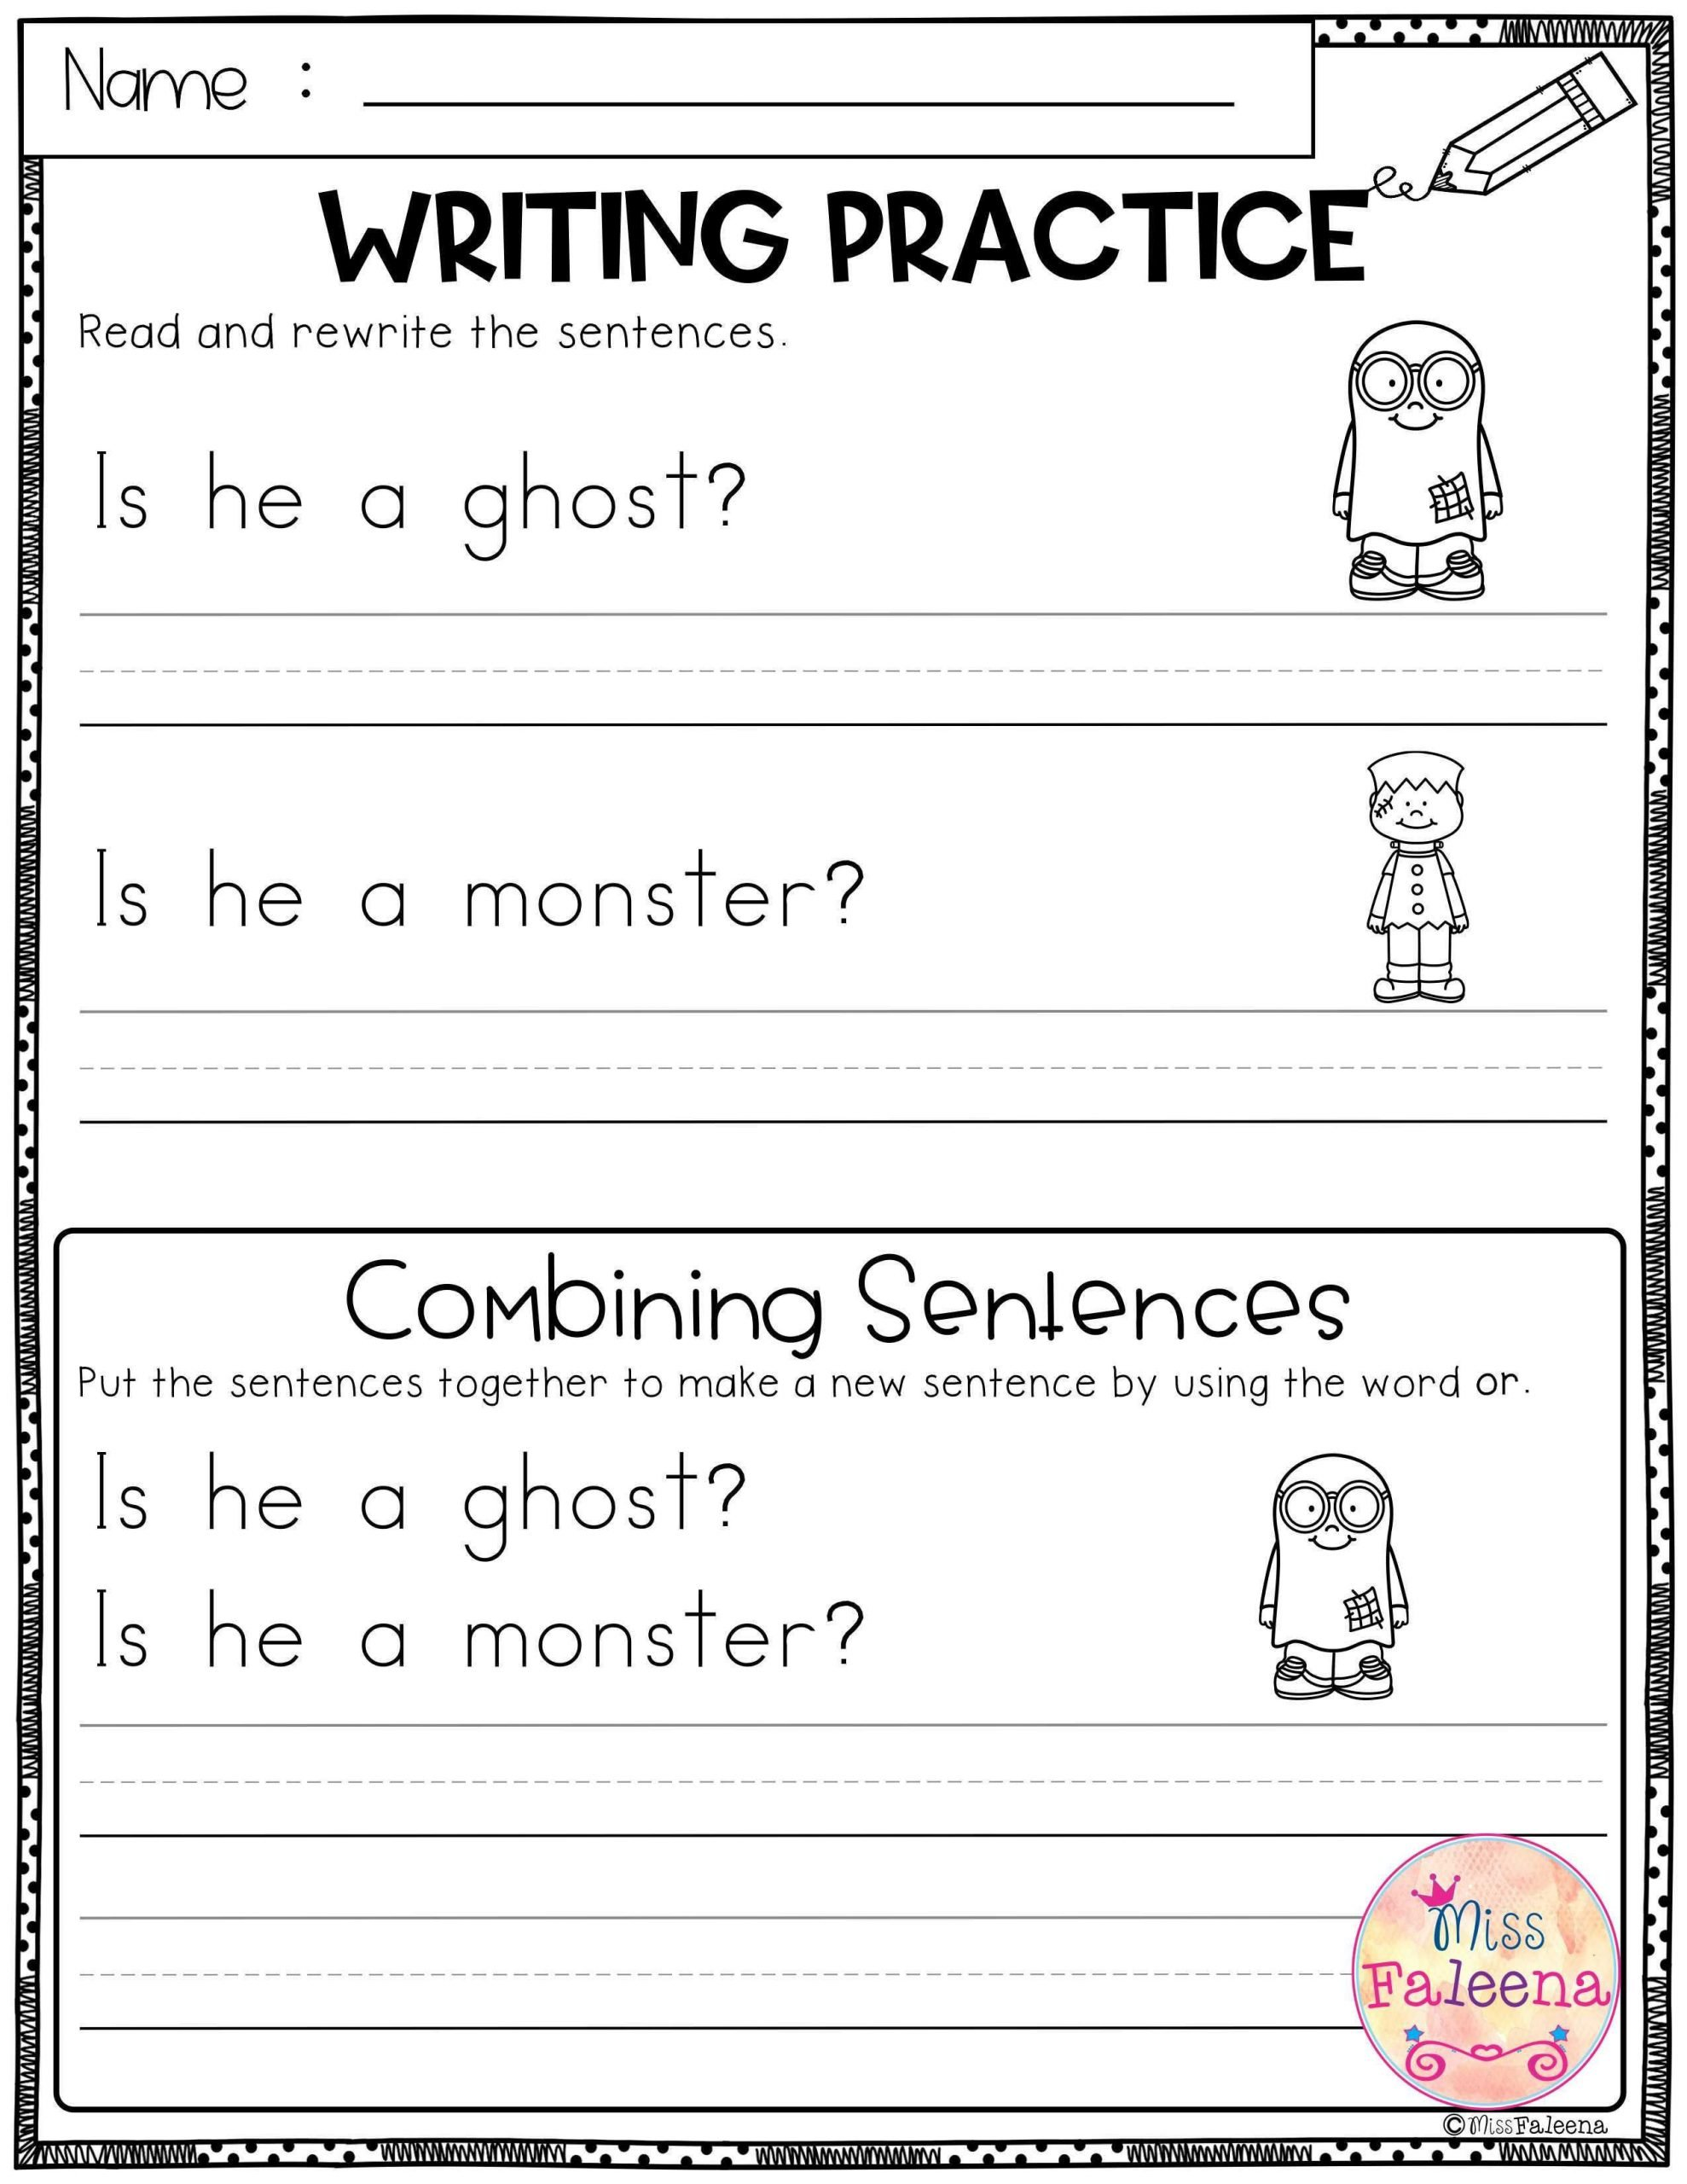 Combining Sentences Worksheet 5th Grade October Writing Practice Bining Sentences